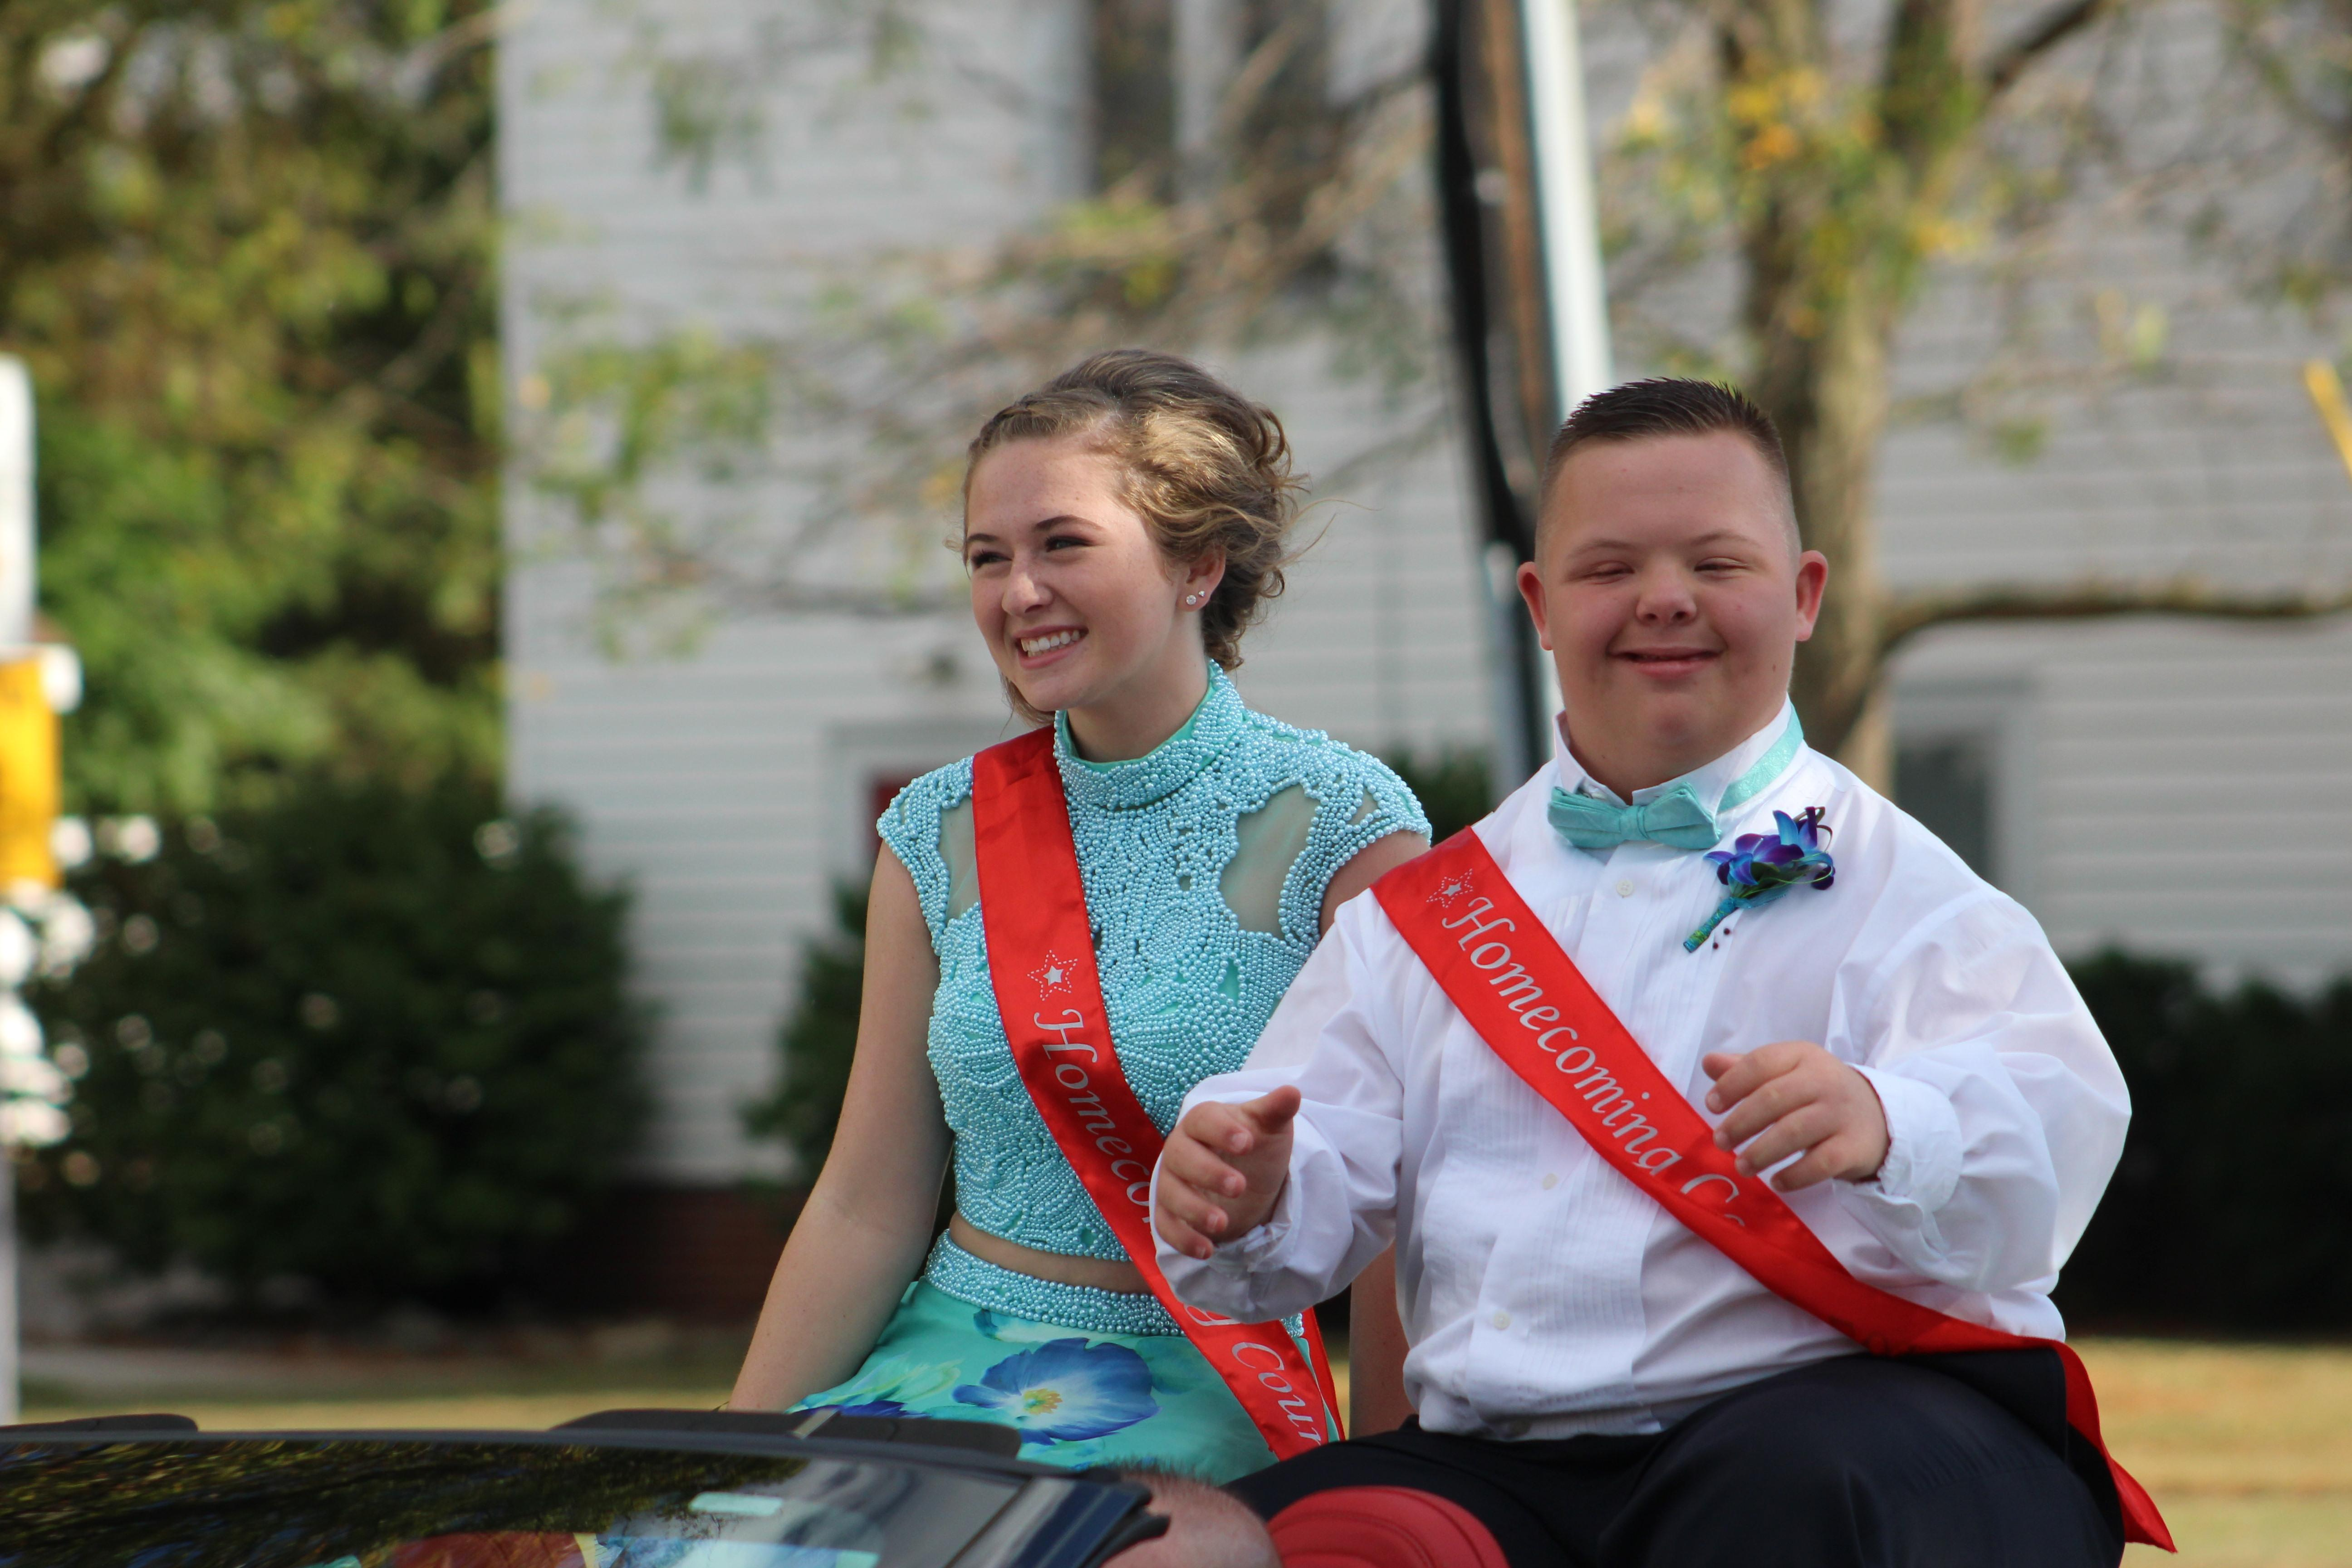 Two students riding in a convertible during the homecoming parade